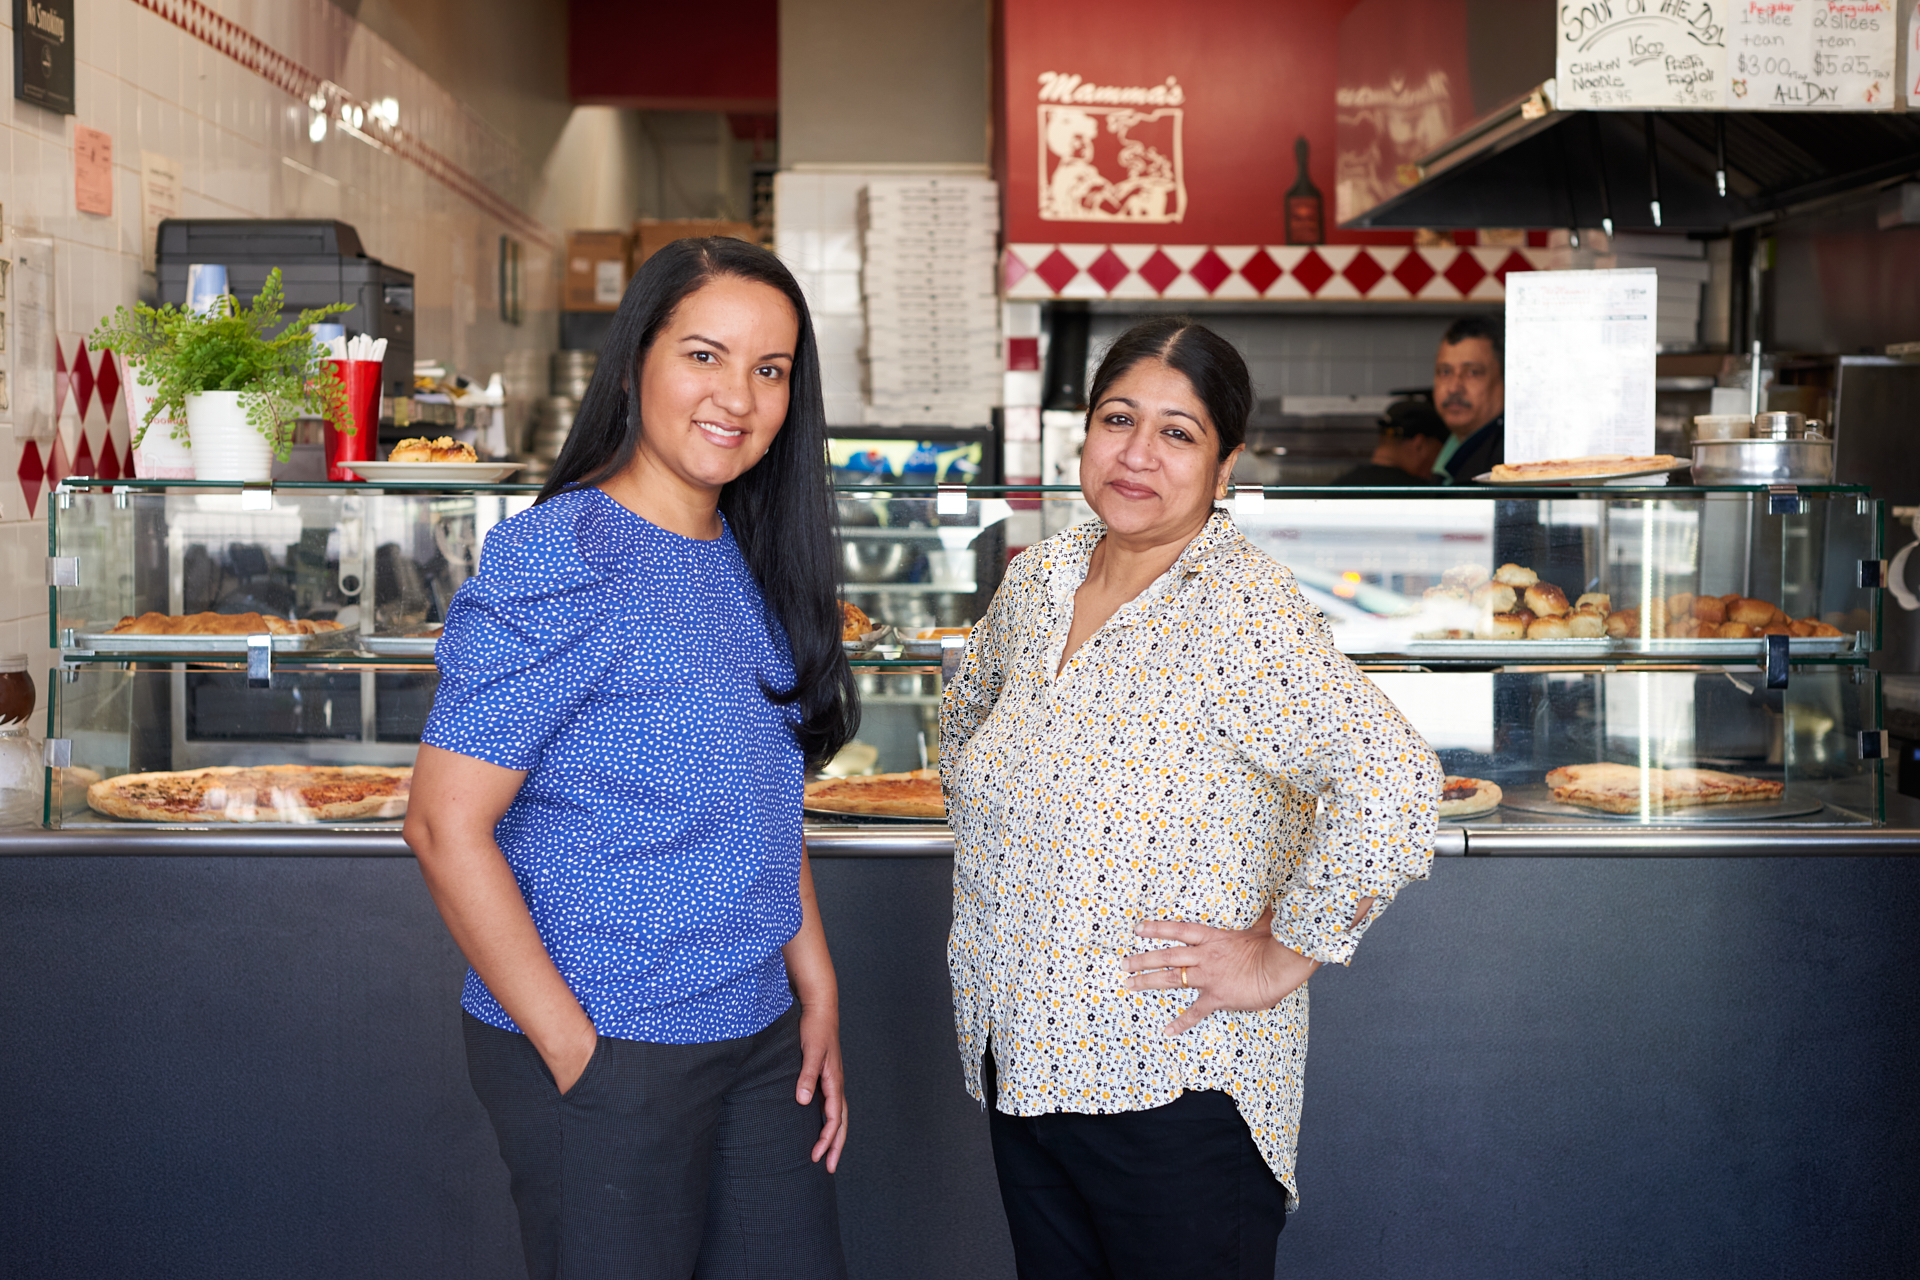 A Queens Small Business Grant helped Mamma's Pizza in Queens